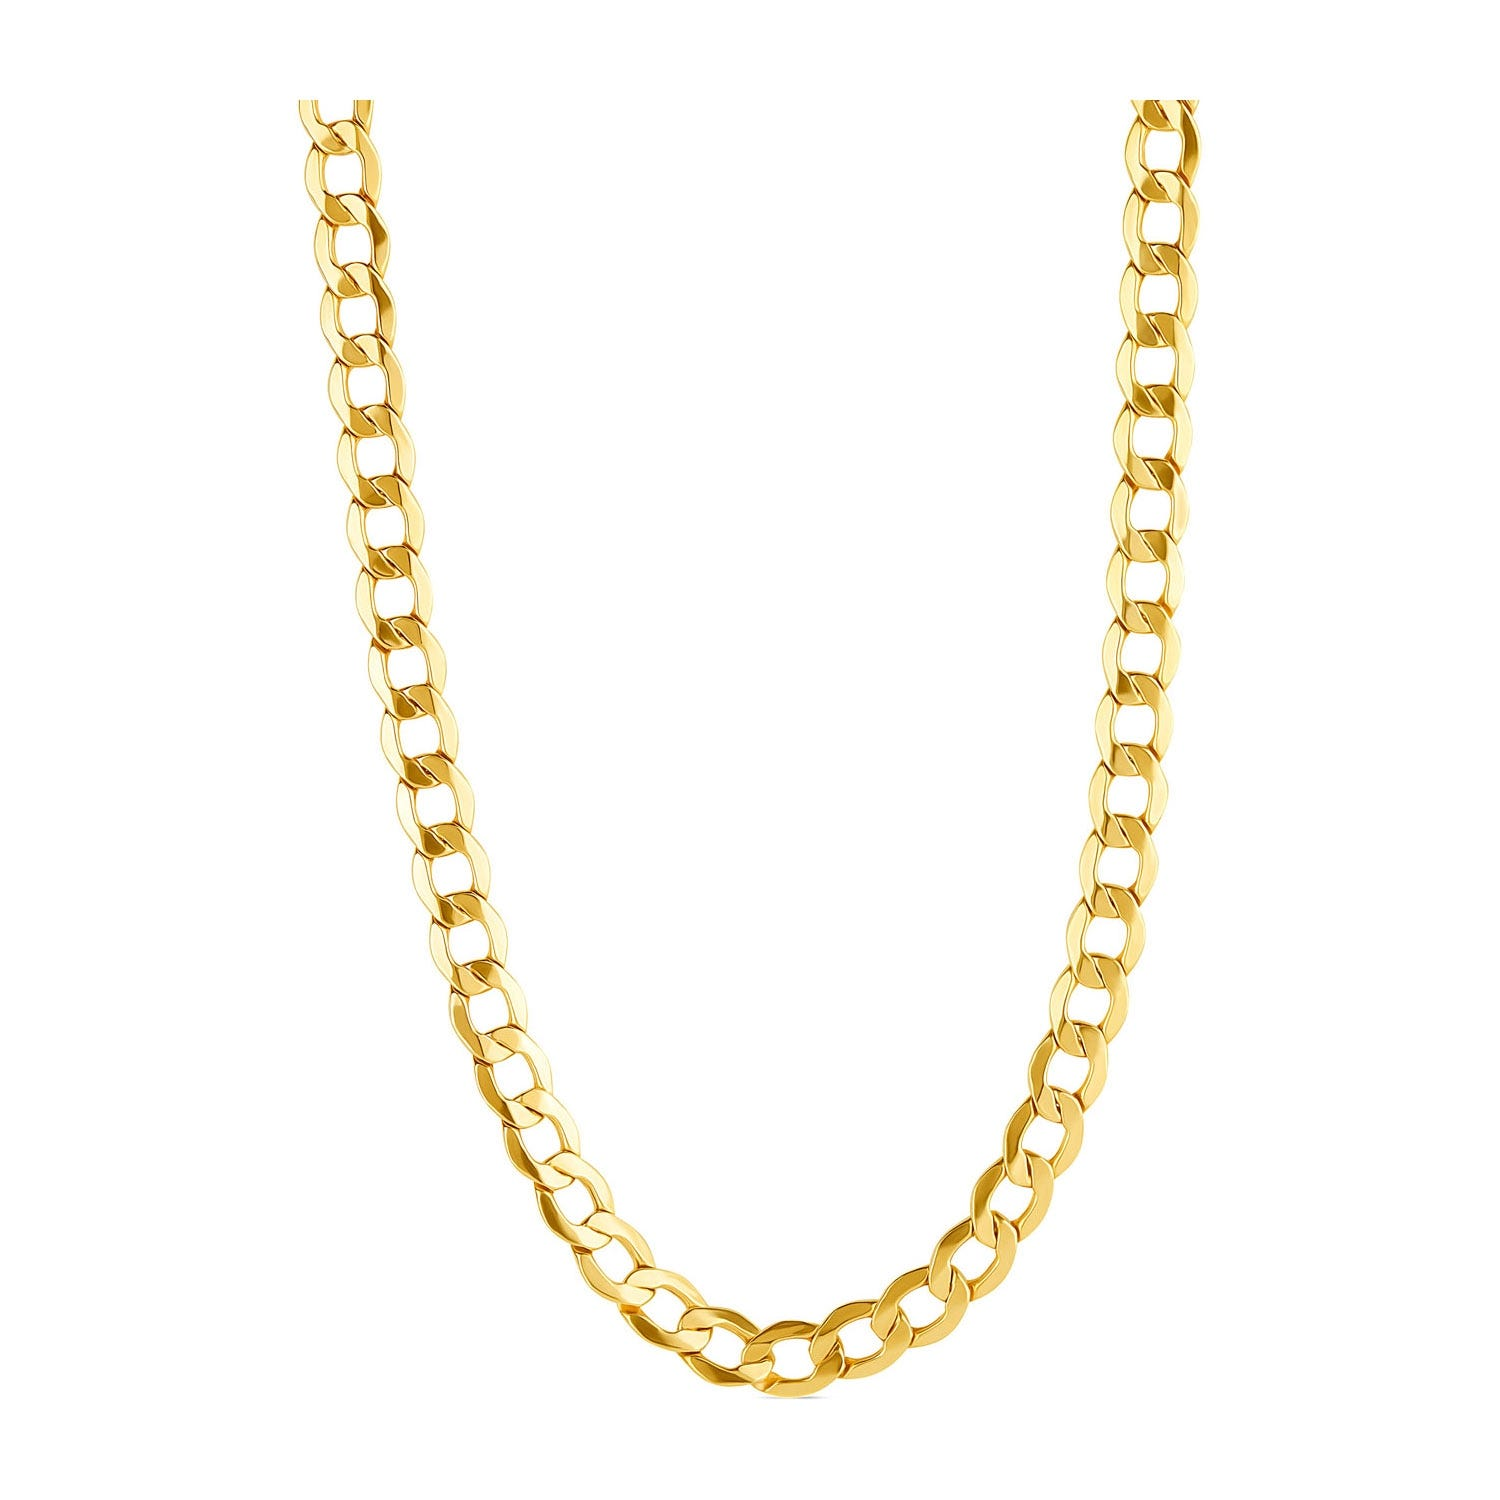 9ct Yellow Gold Flat Curb 51cm Men's Necklace